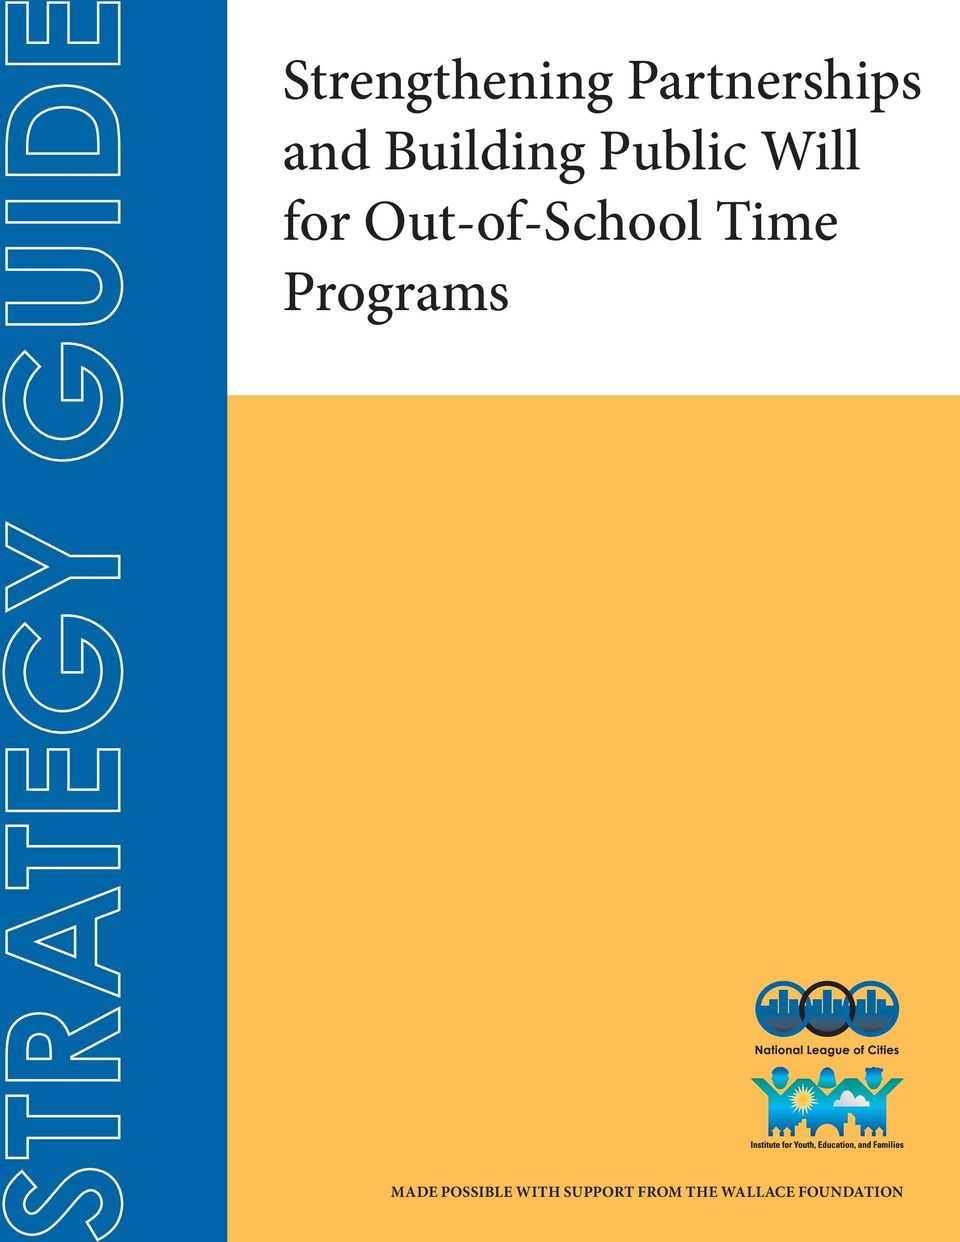 Out-of-School Time Programs Made